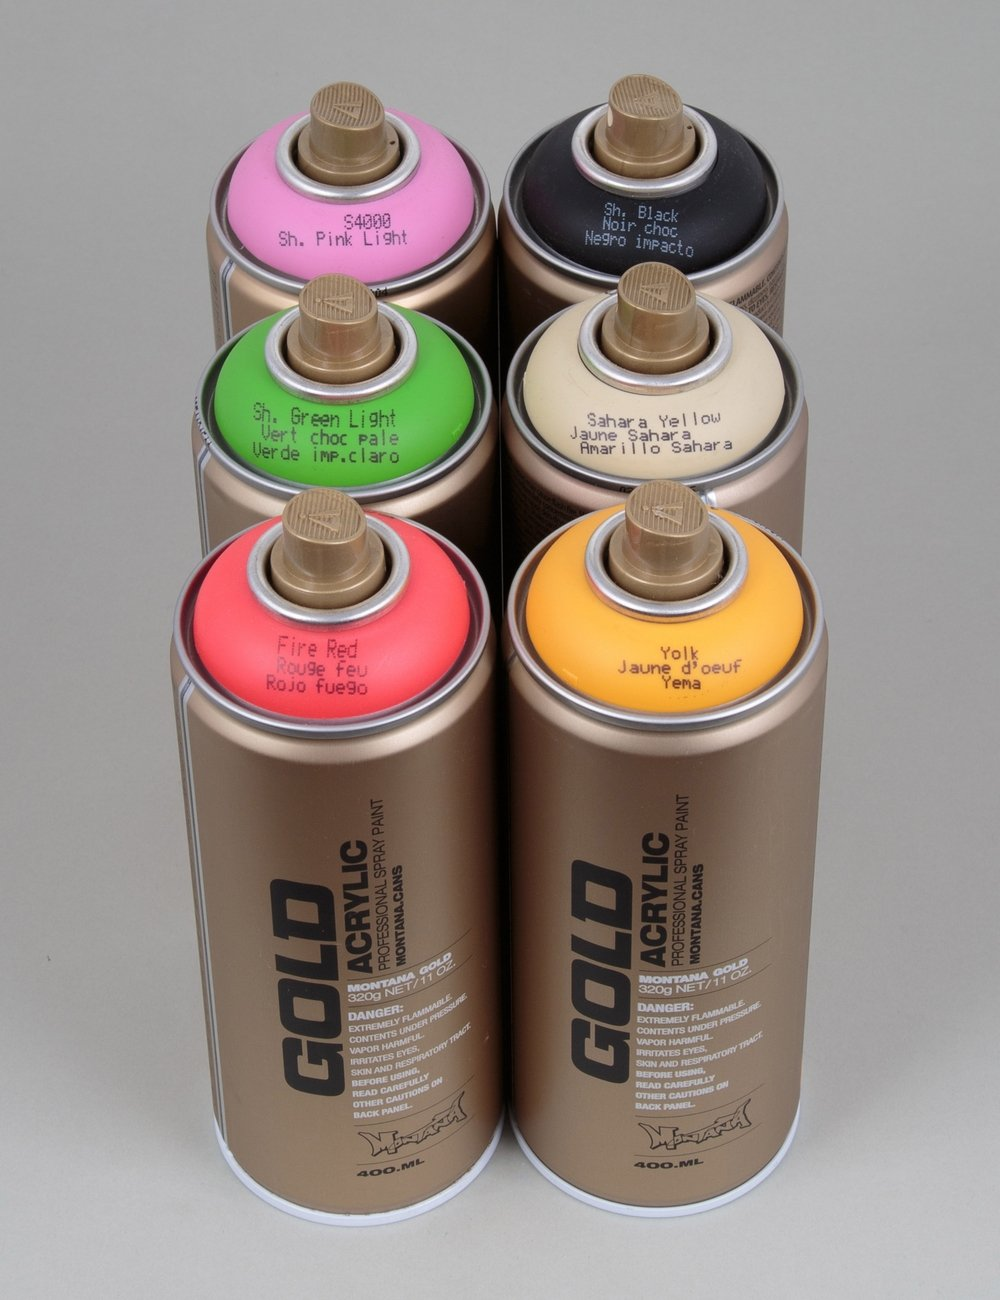 Montana Gold Spray Paint Deal 6 Cans Spray Paint Supplies From Iconsume Uk